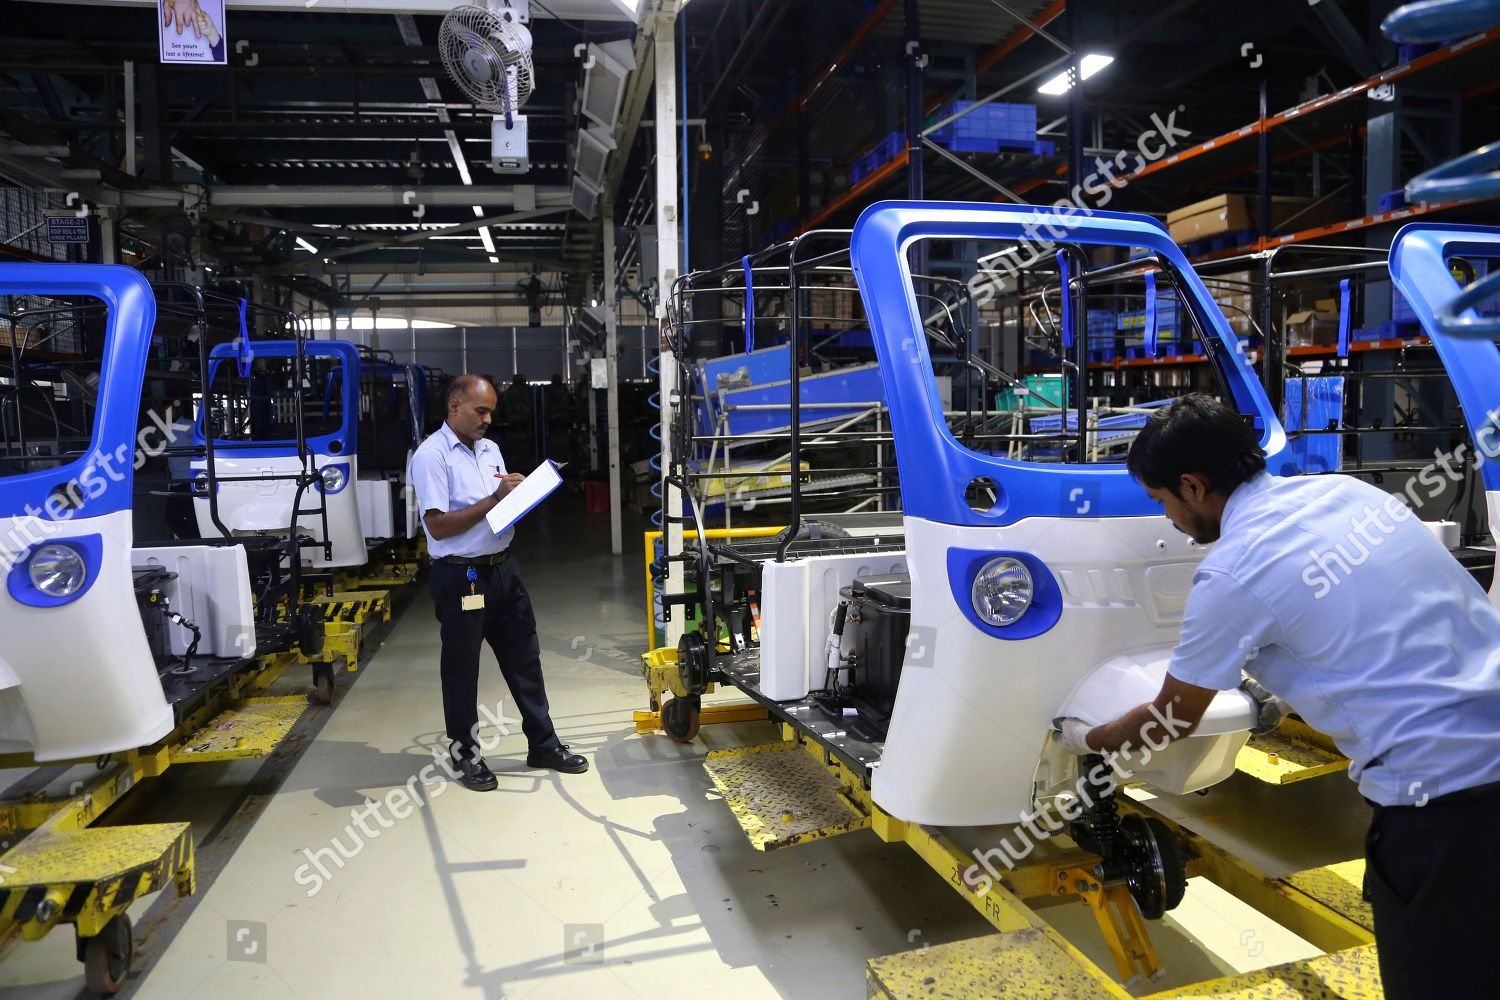 Indian workers perform check on threewheeler electric